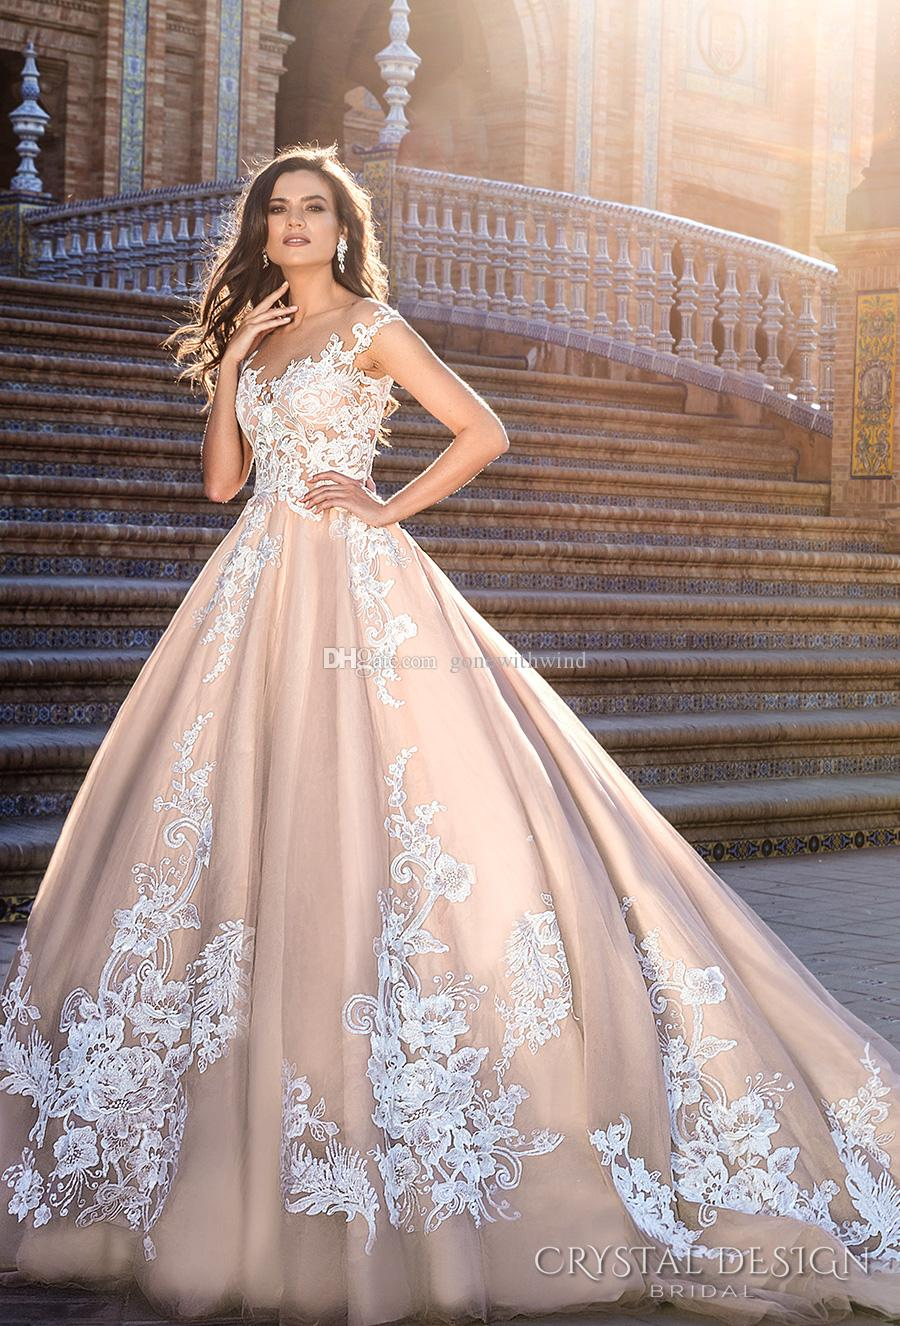 Blush ball gown wedding dresses 2017 crystal design bridal for Crystal design wedding dresses price